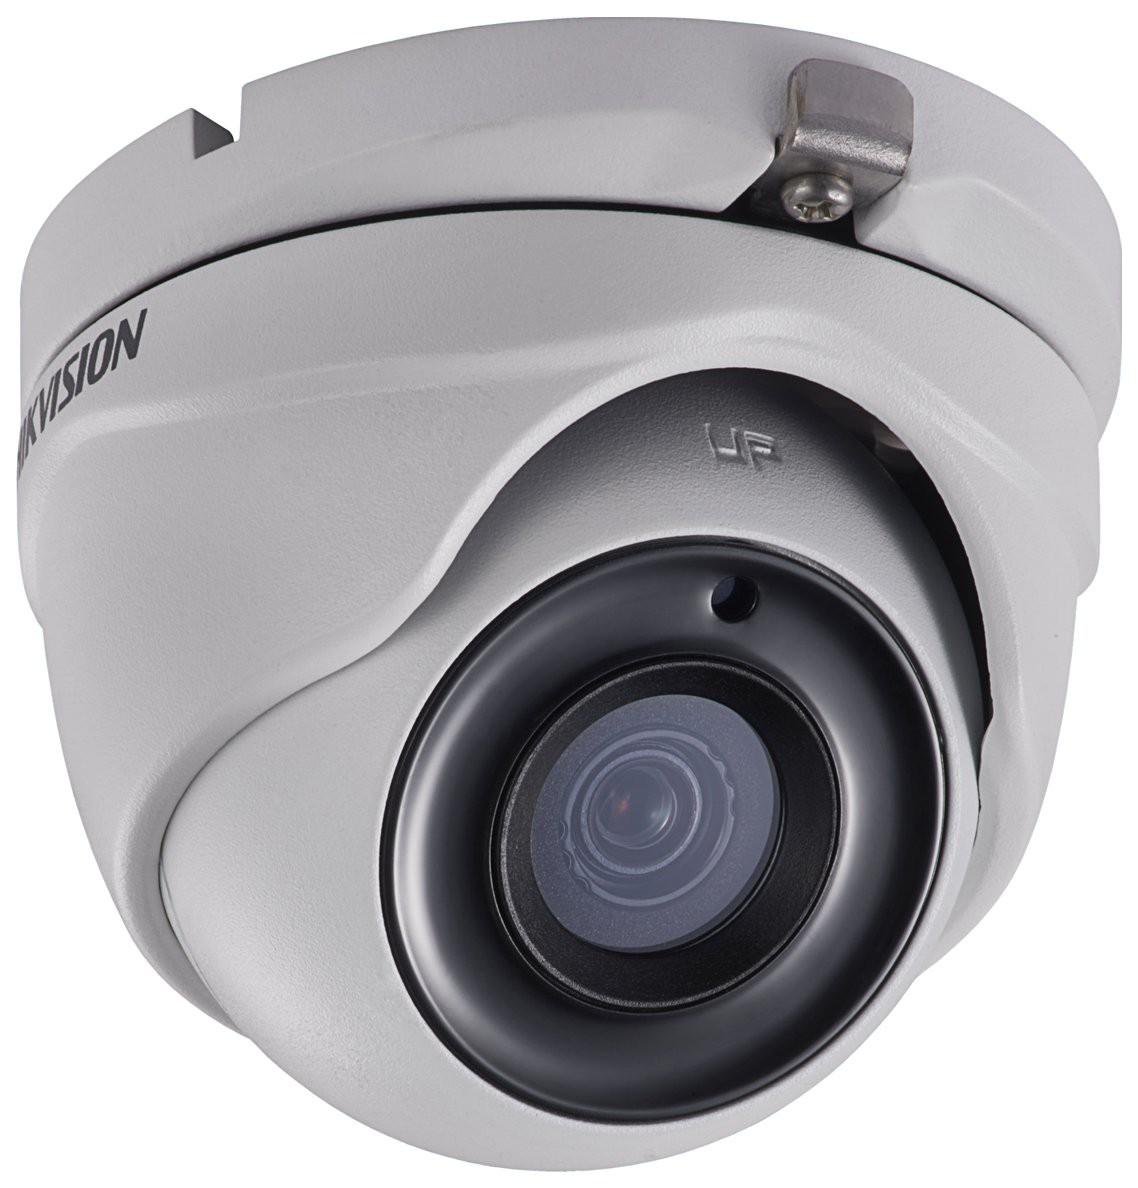 HIKVISION 5MP Dome Camera, 2.8mm lens, 20m EXIR, Power over Coax